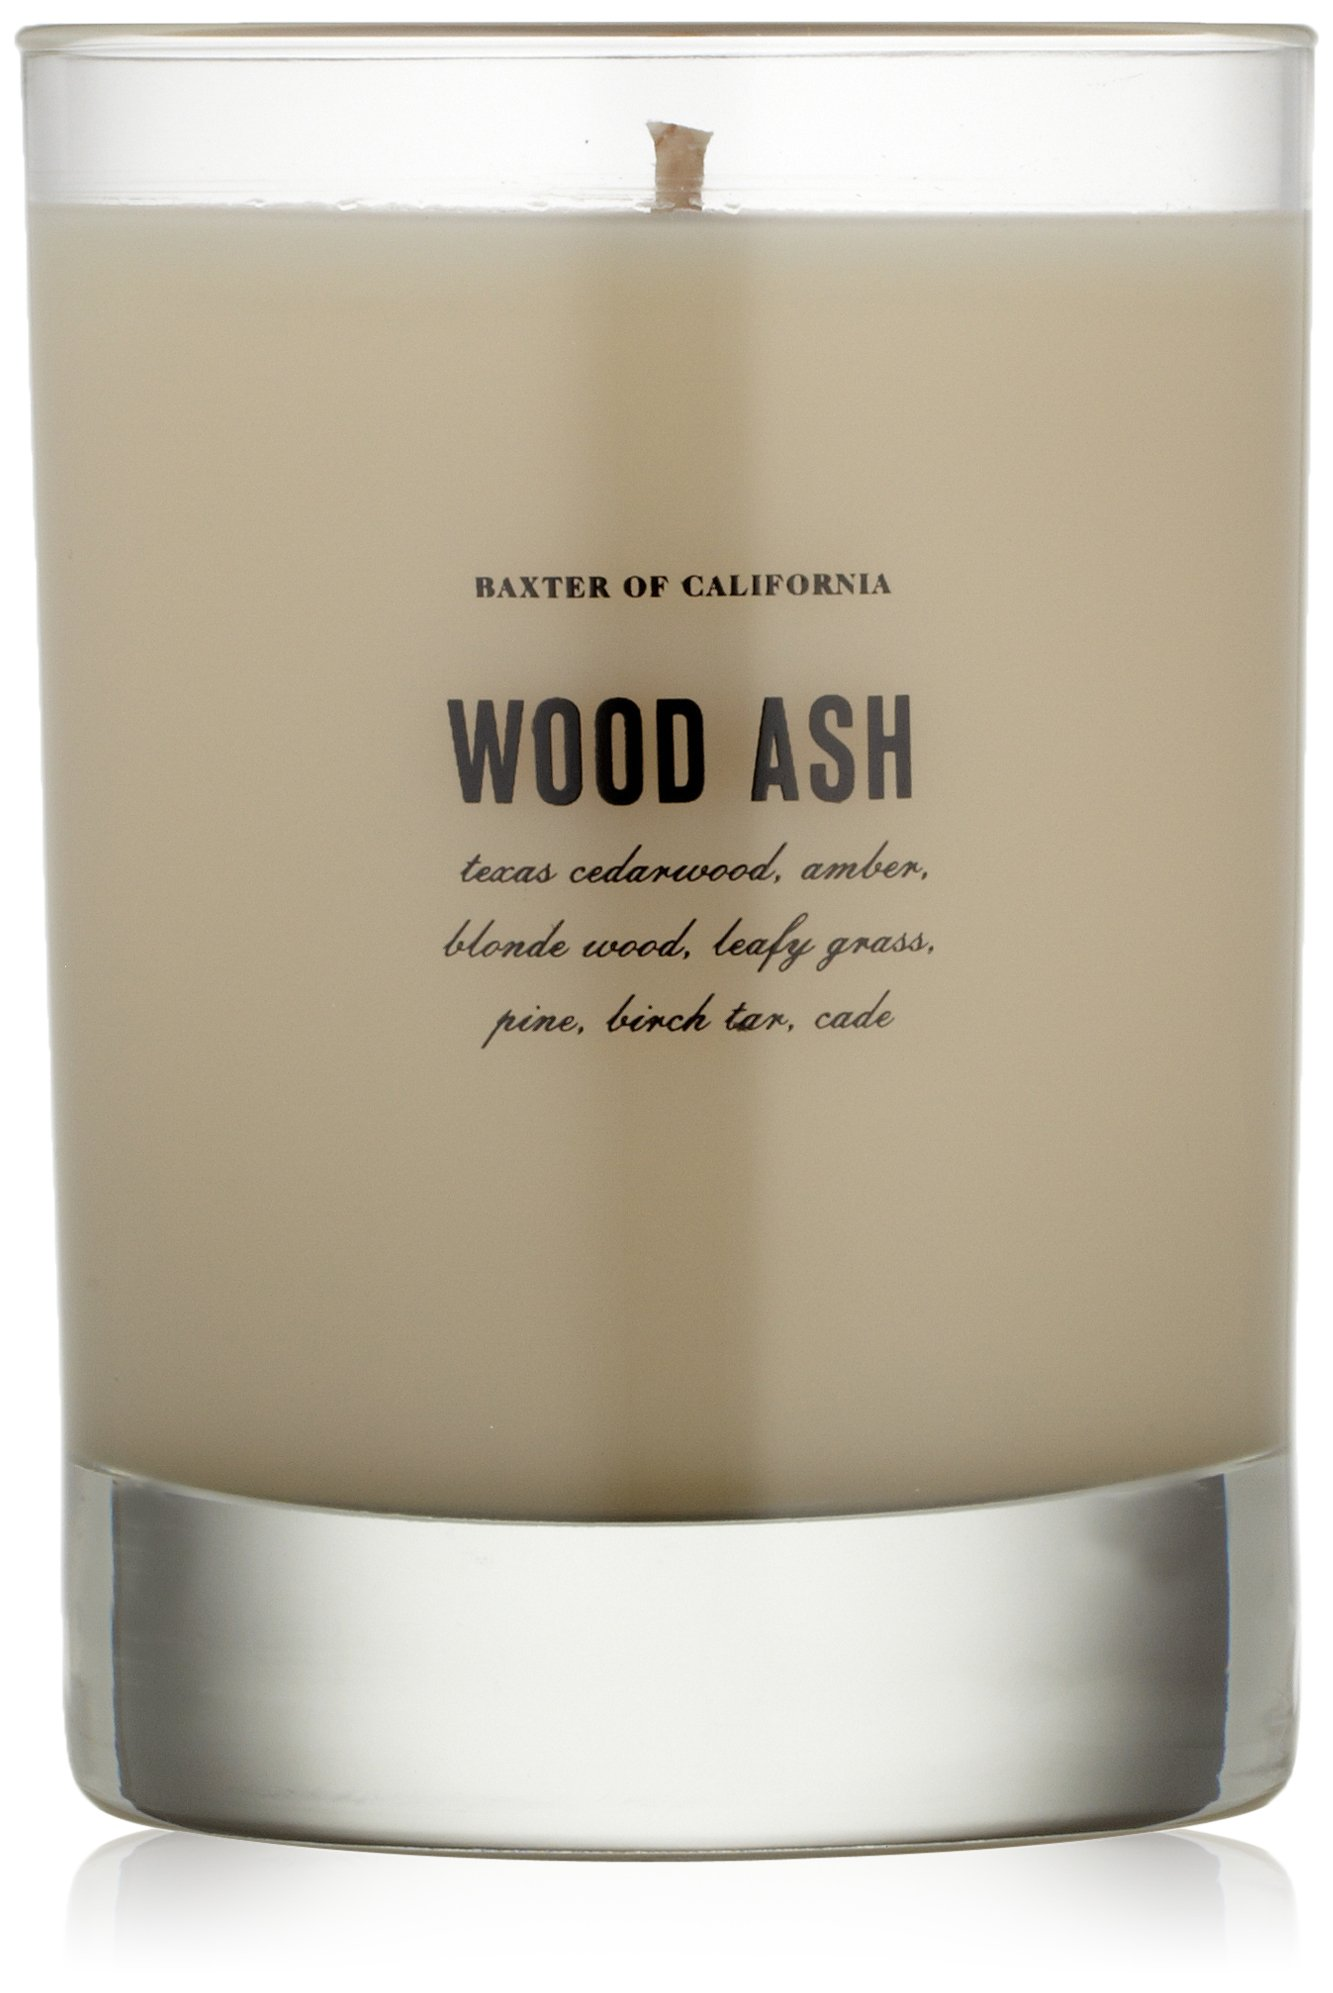 Baxter of California Scented Candle, Wood Ash by Baxter of California